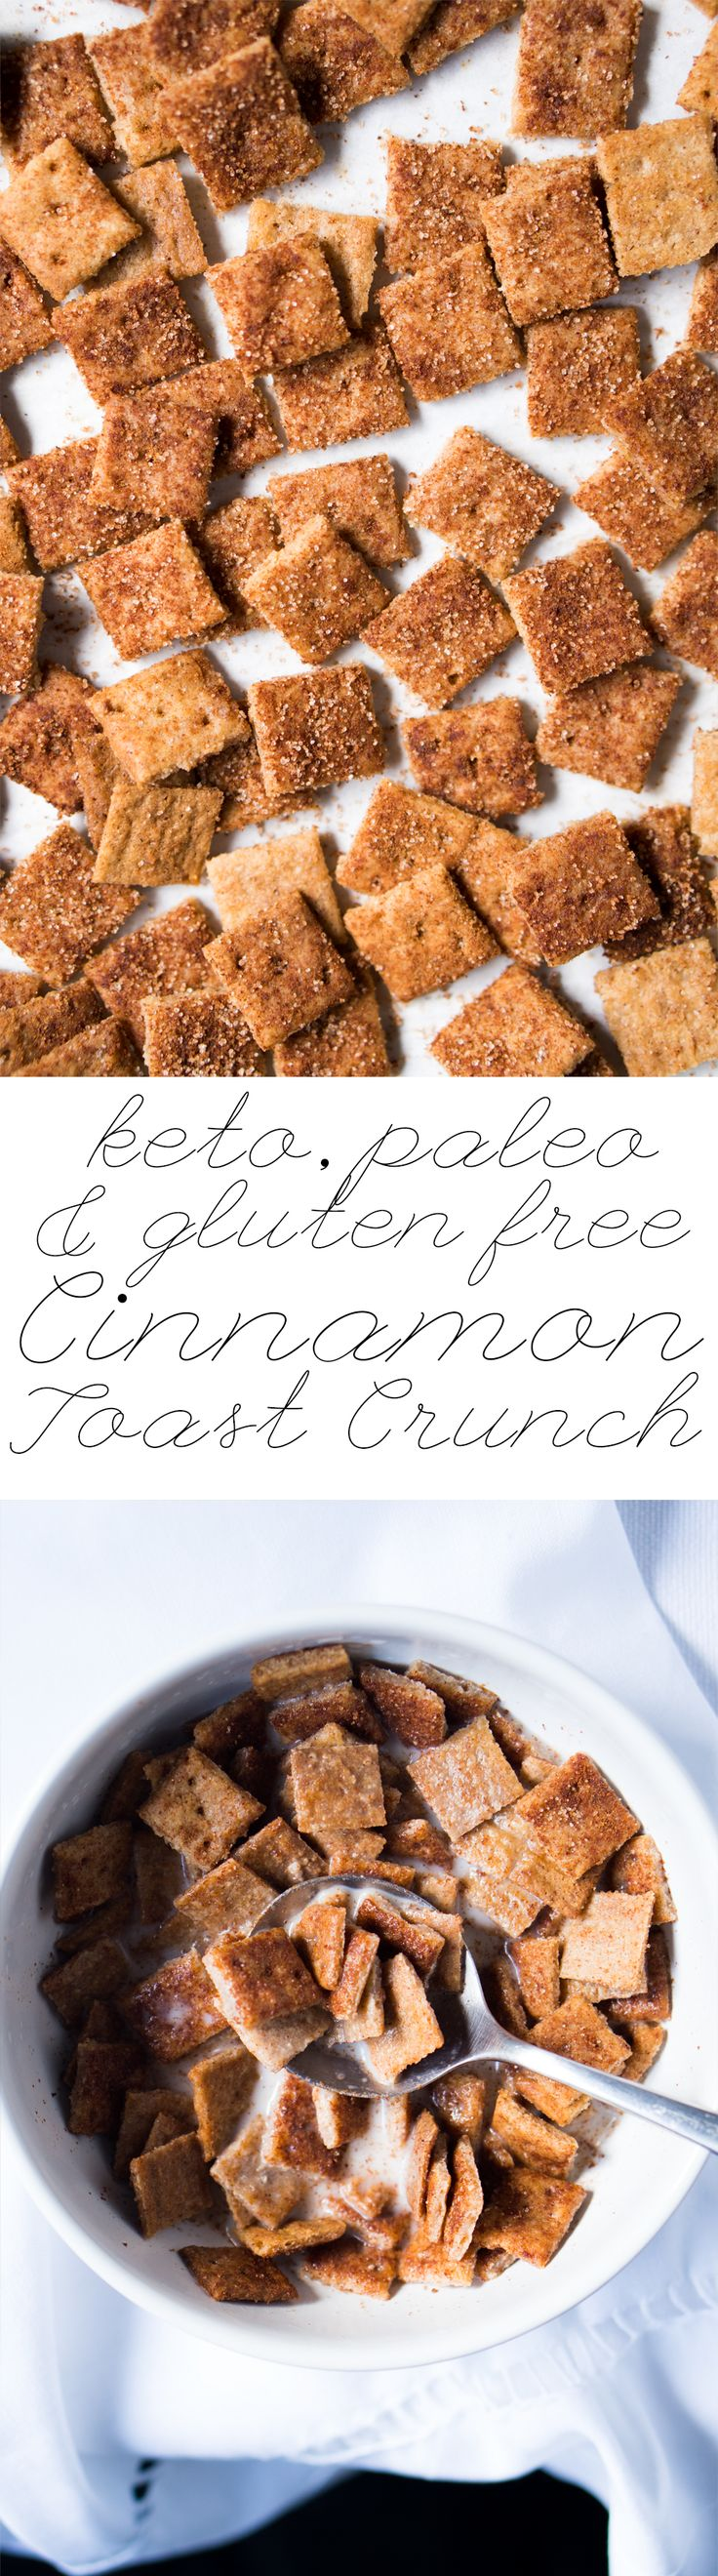 Paleo & Keto Cinnamon Toast Crunch 2g net carbs I do believe this might just be the most amazing thing i ever Pin.